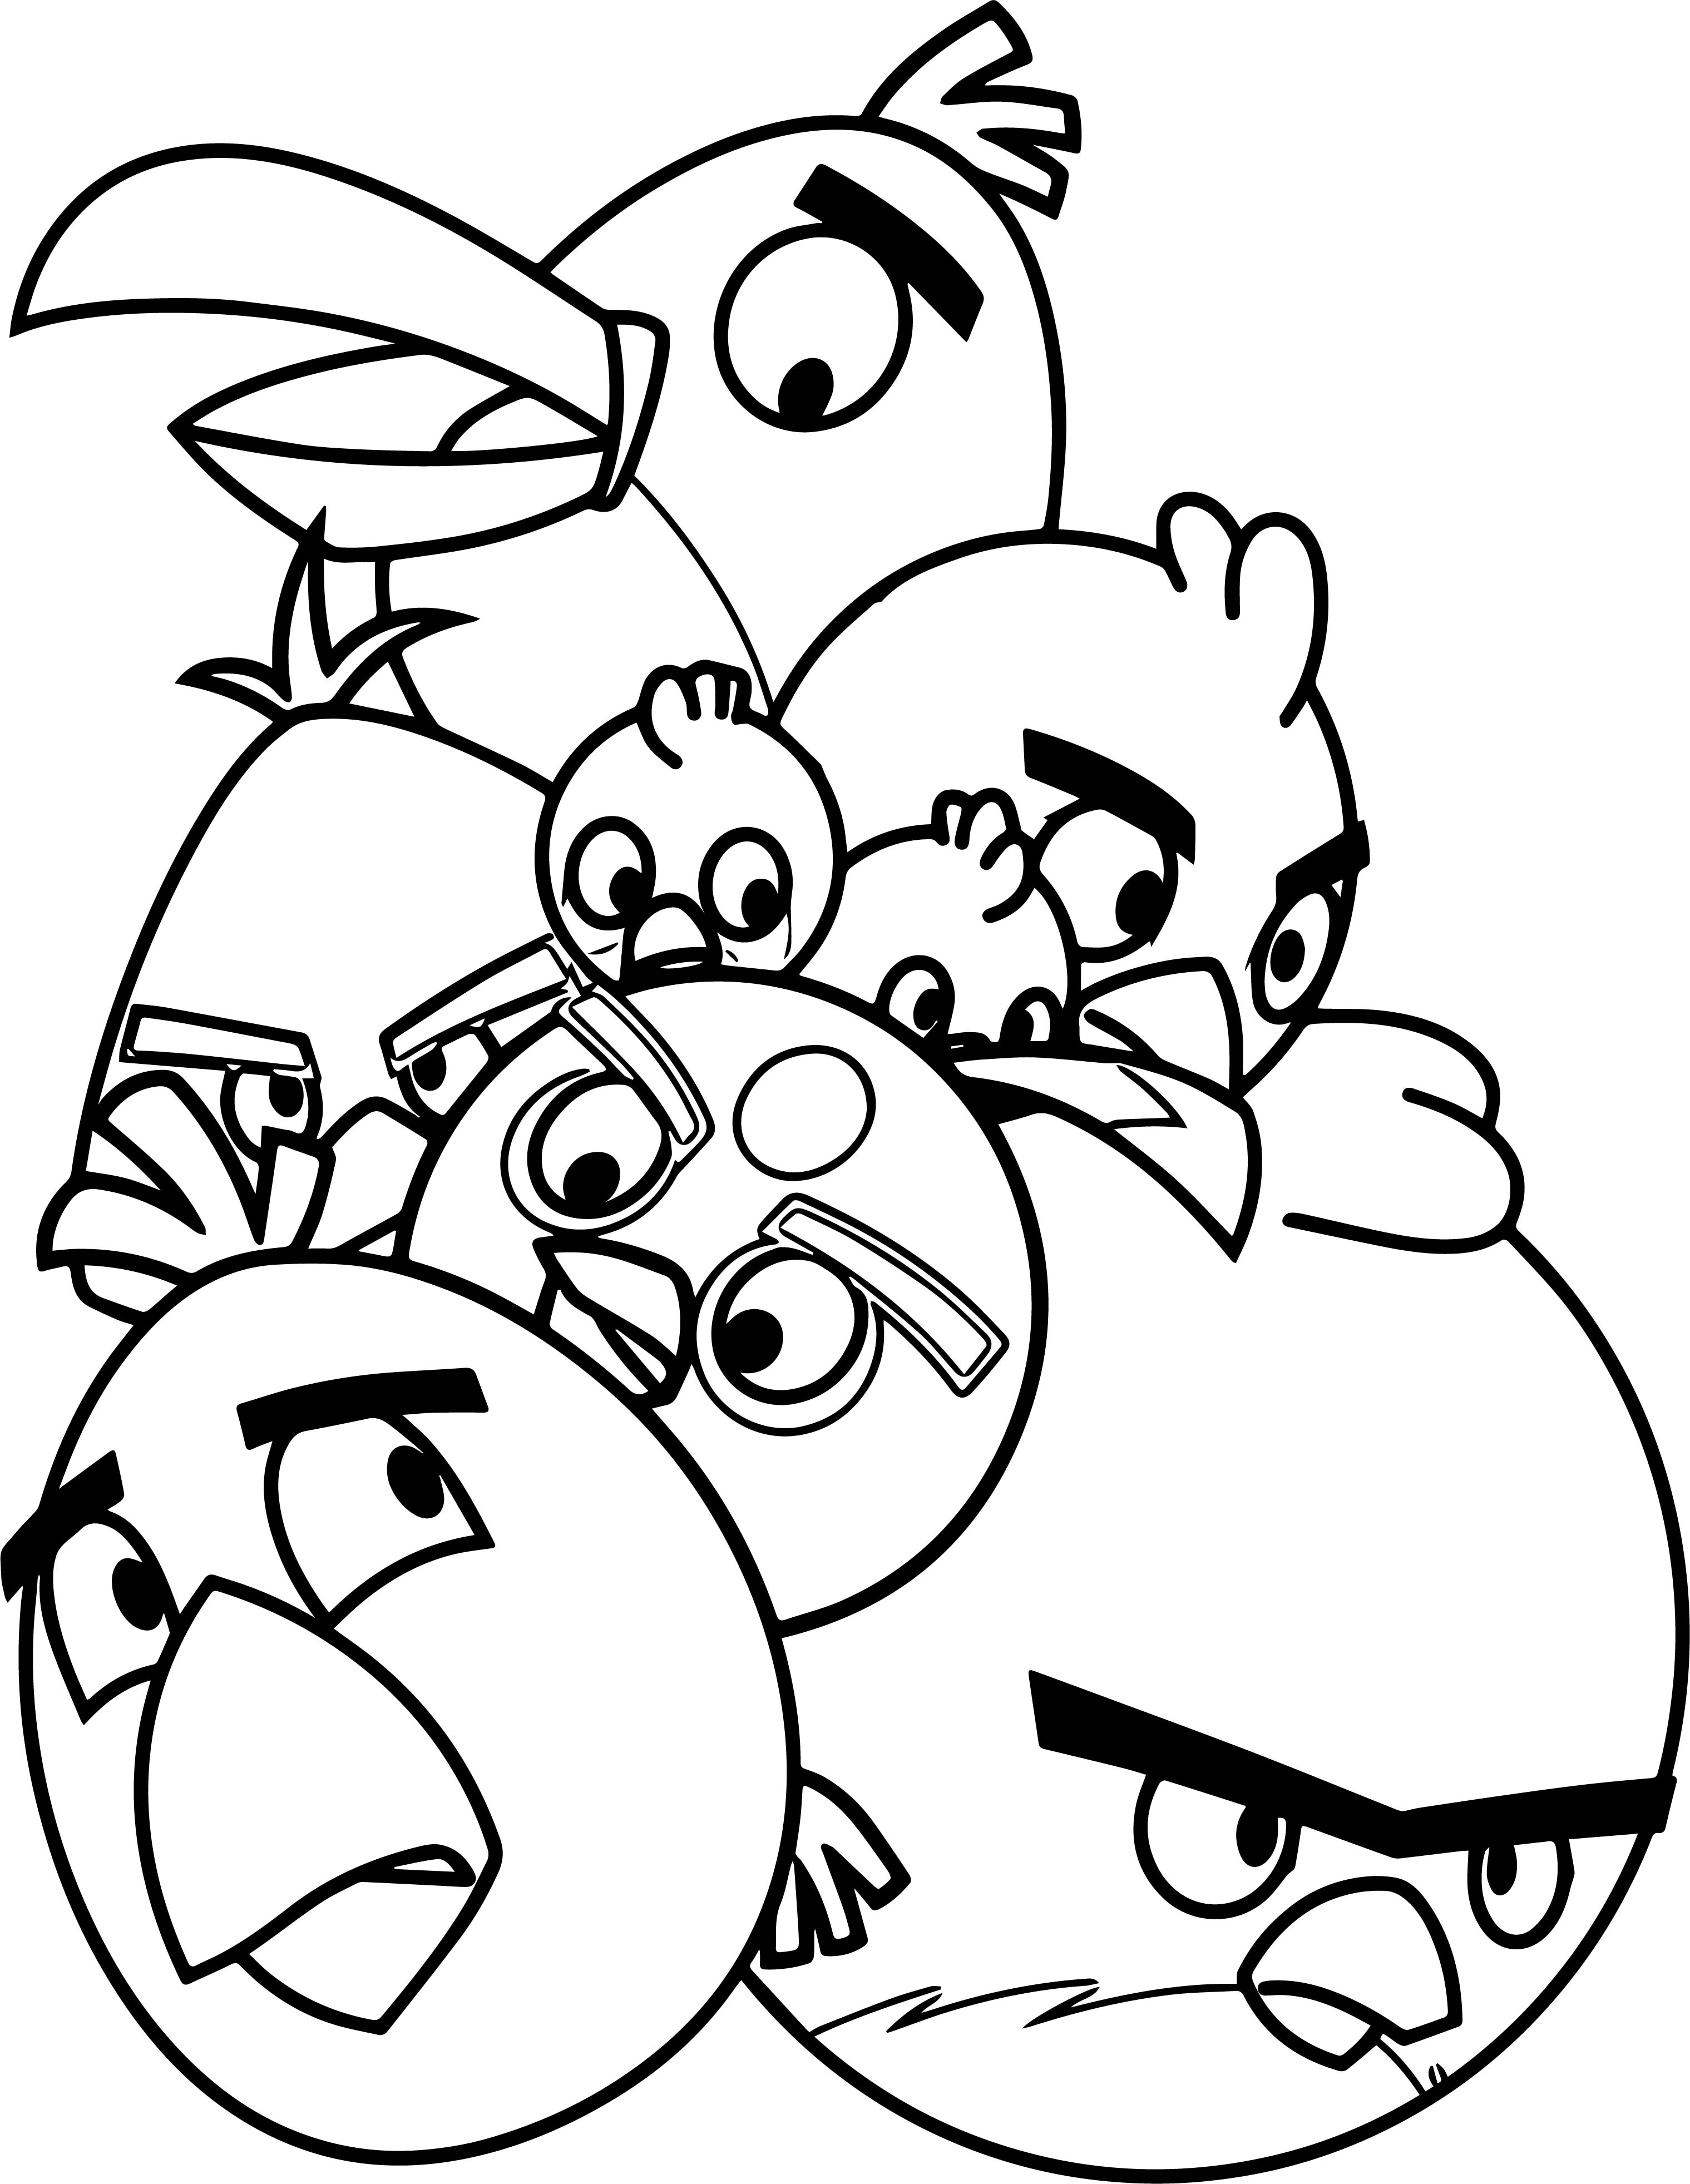 Ausmalbilder Angry Birds Space: Pile Of Angry Birds Coloring Page